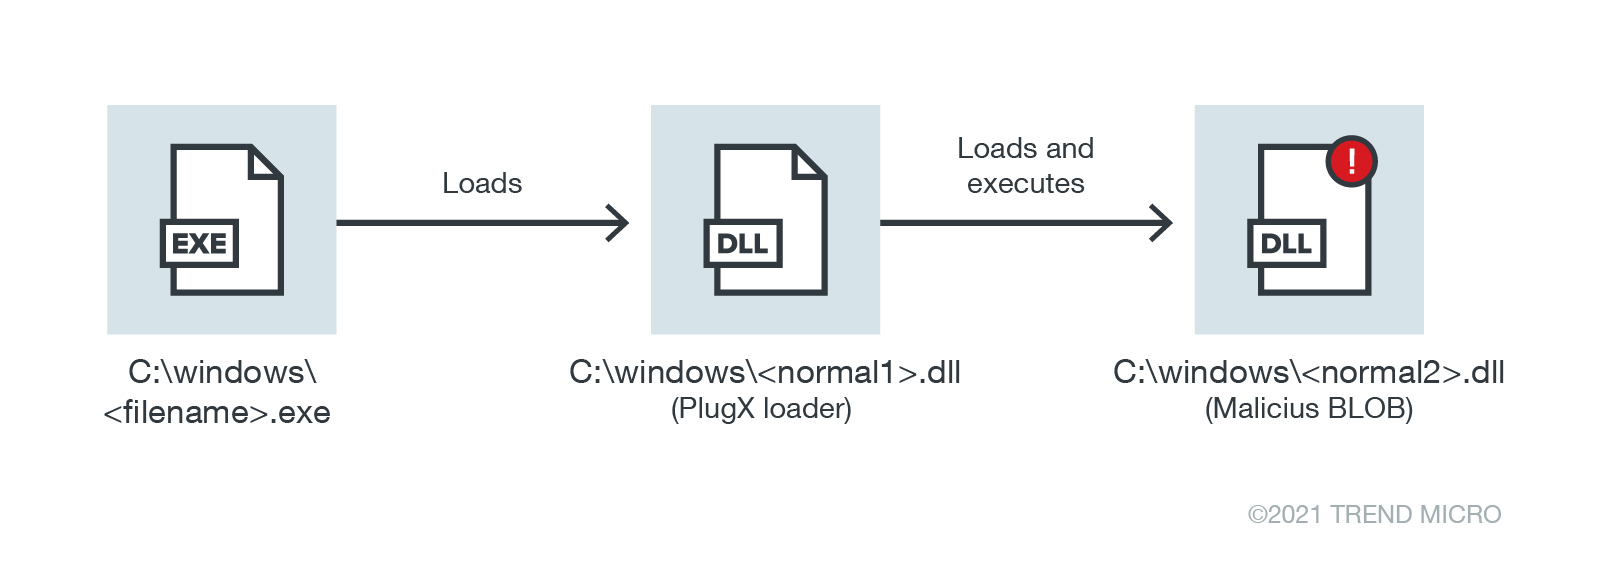 The relationship between the normal file used, the PlugX, and the malicious BLOB